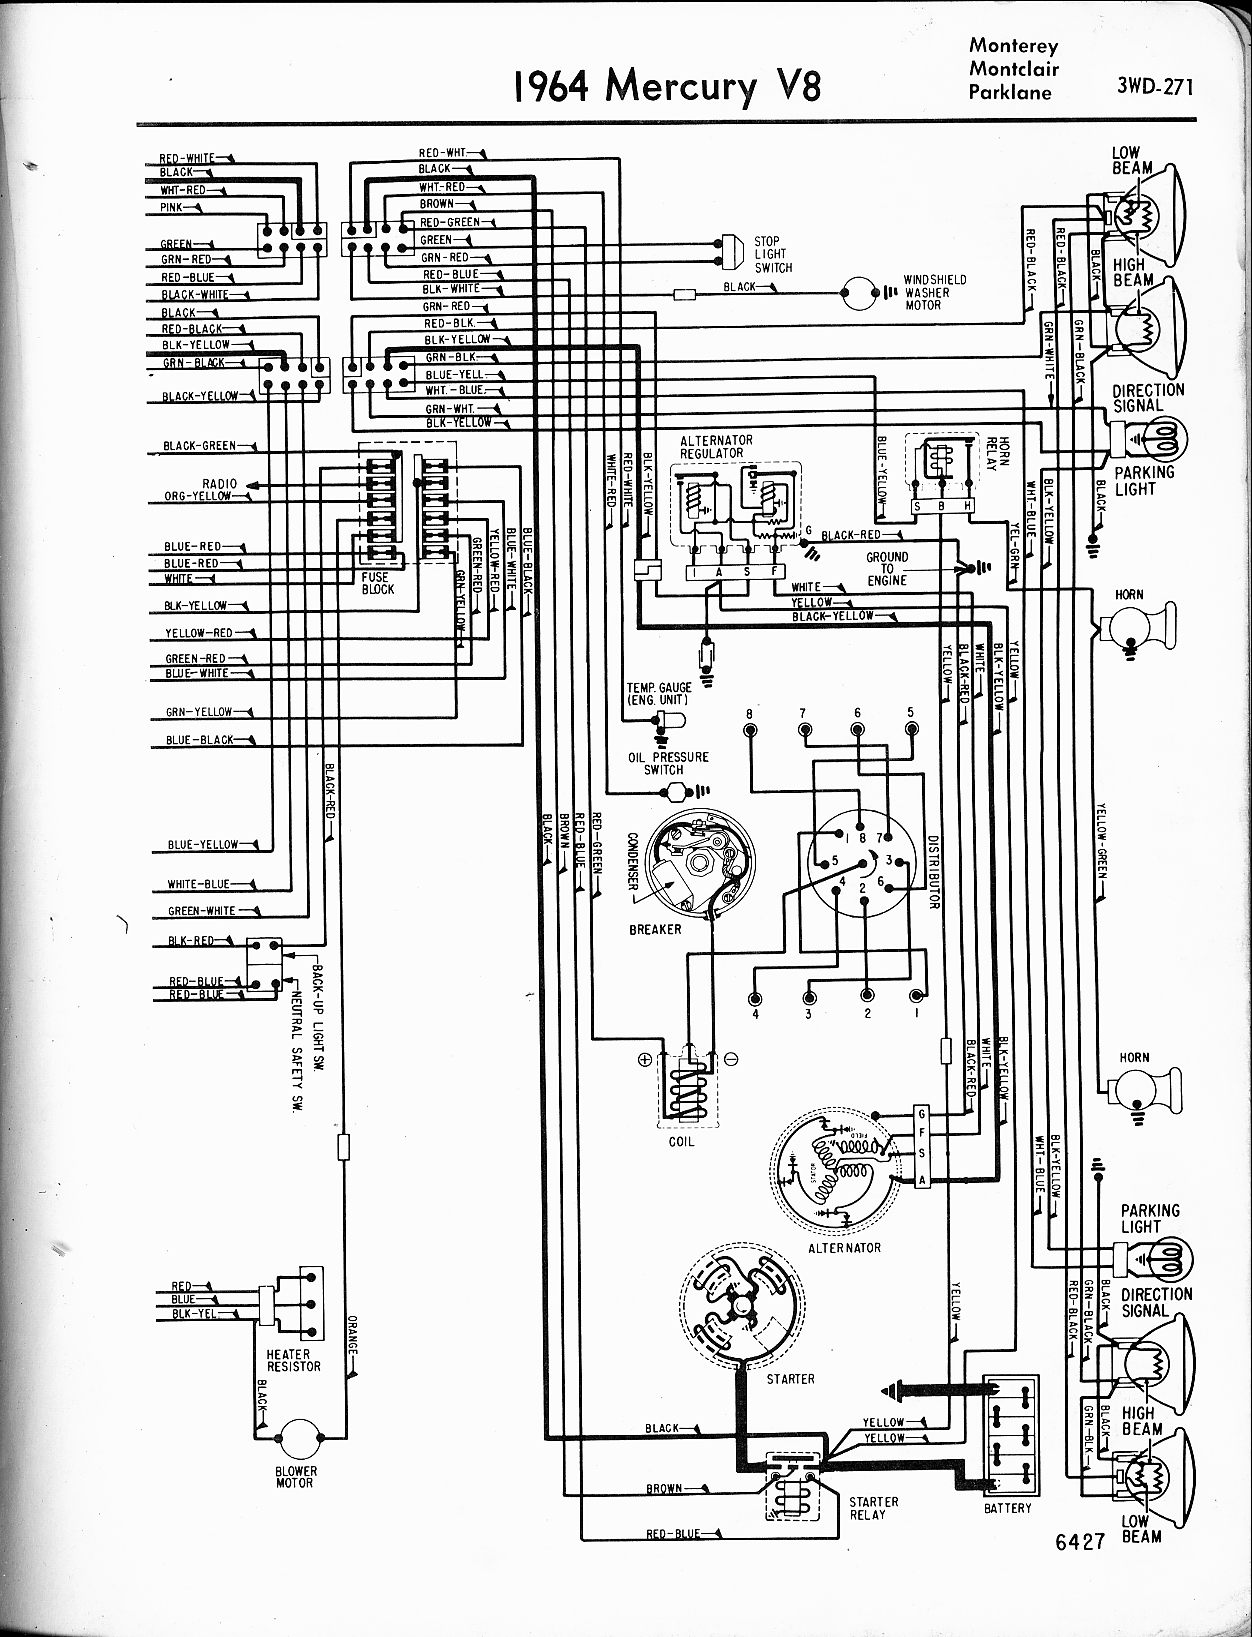 MWire5765 271 64 falcon wiring diagram 64 comet ignition wiring \u2022 wiring 64 valiant wiring diagram at readyjetset.co